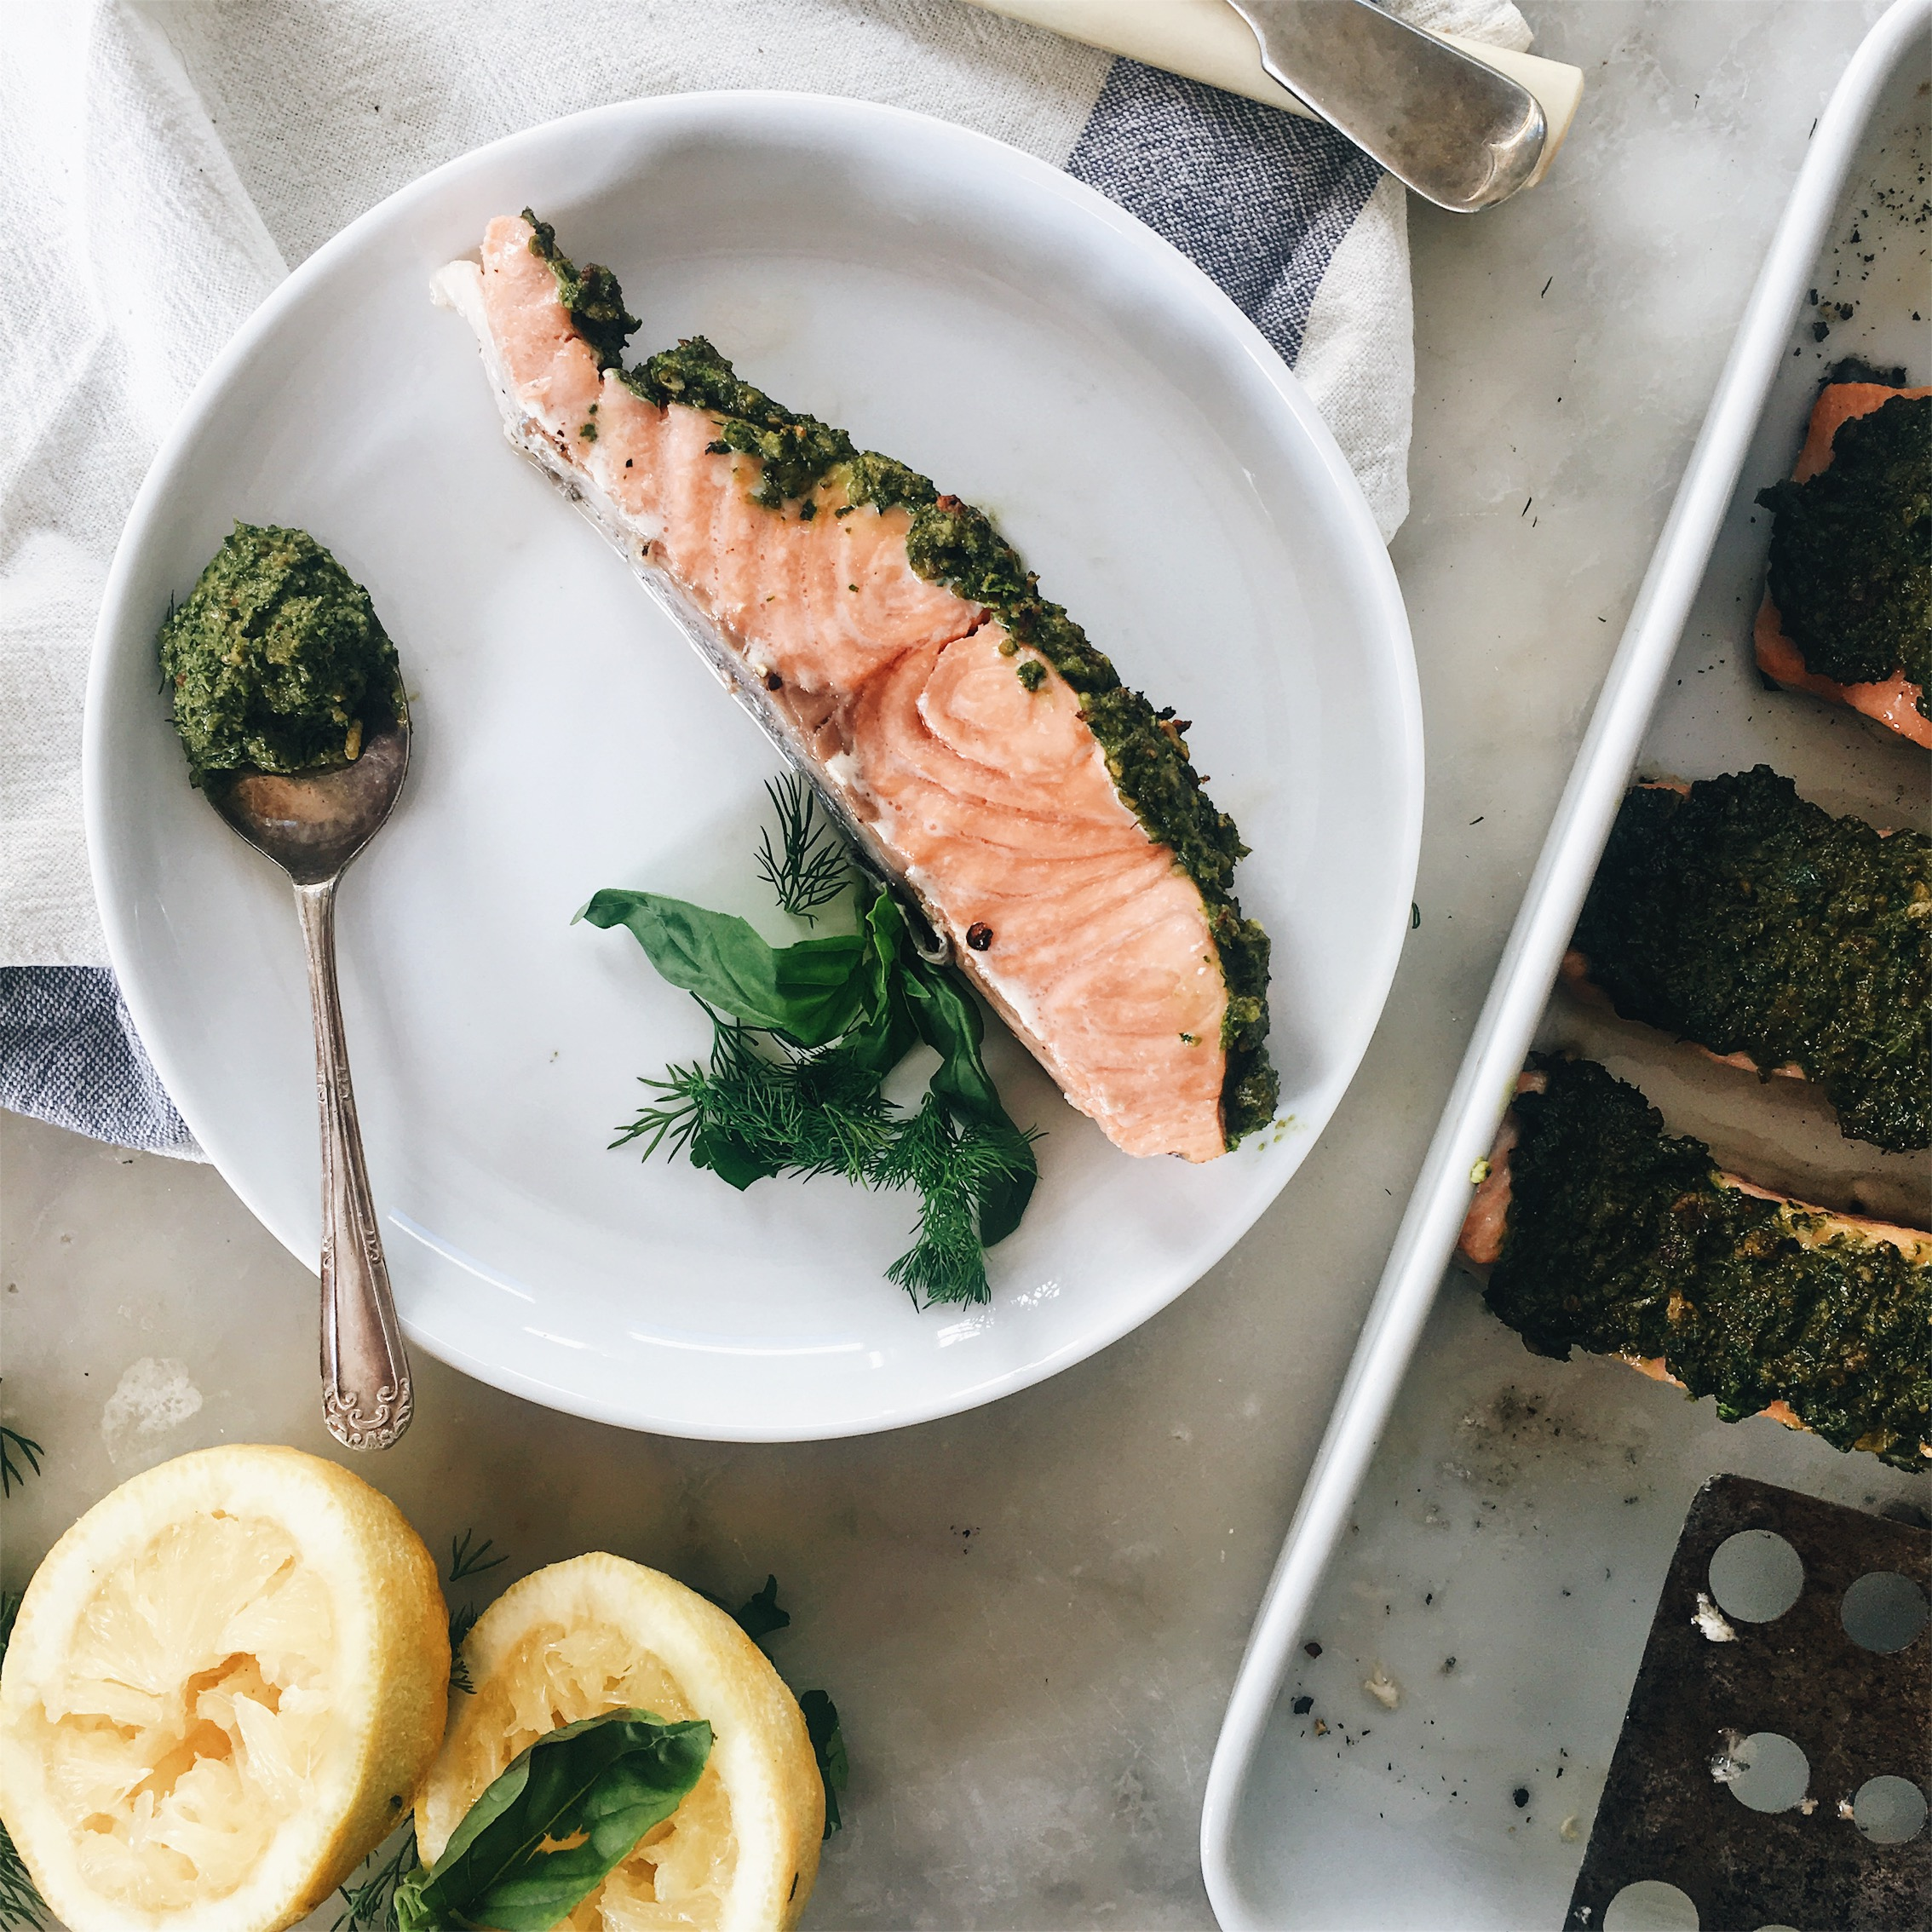 I've Also Had This Salmon Cold, I Had Leftovers Due To Testing The Recipe  Multiple Times O Flaked A Little Bit Into My Breakfast Salad Jar (pesto  Saut�ed